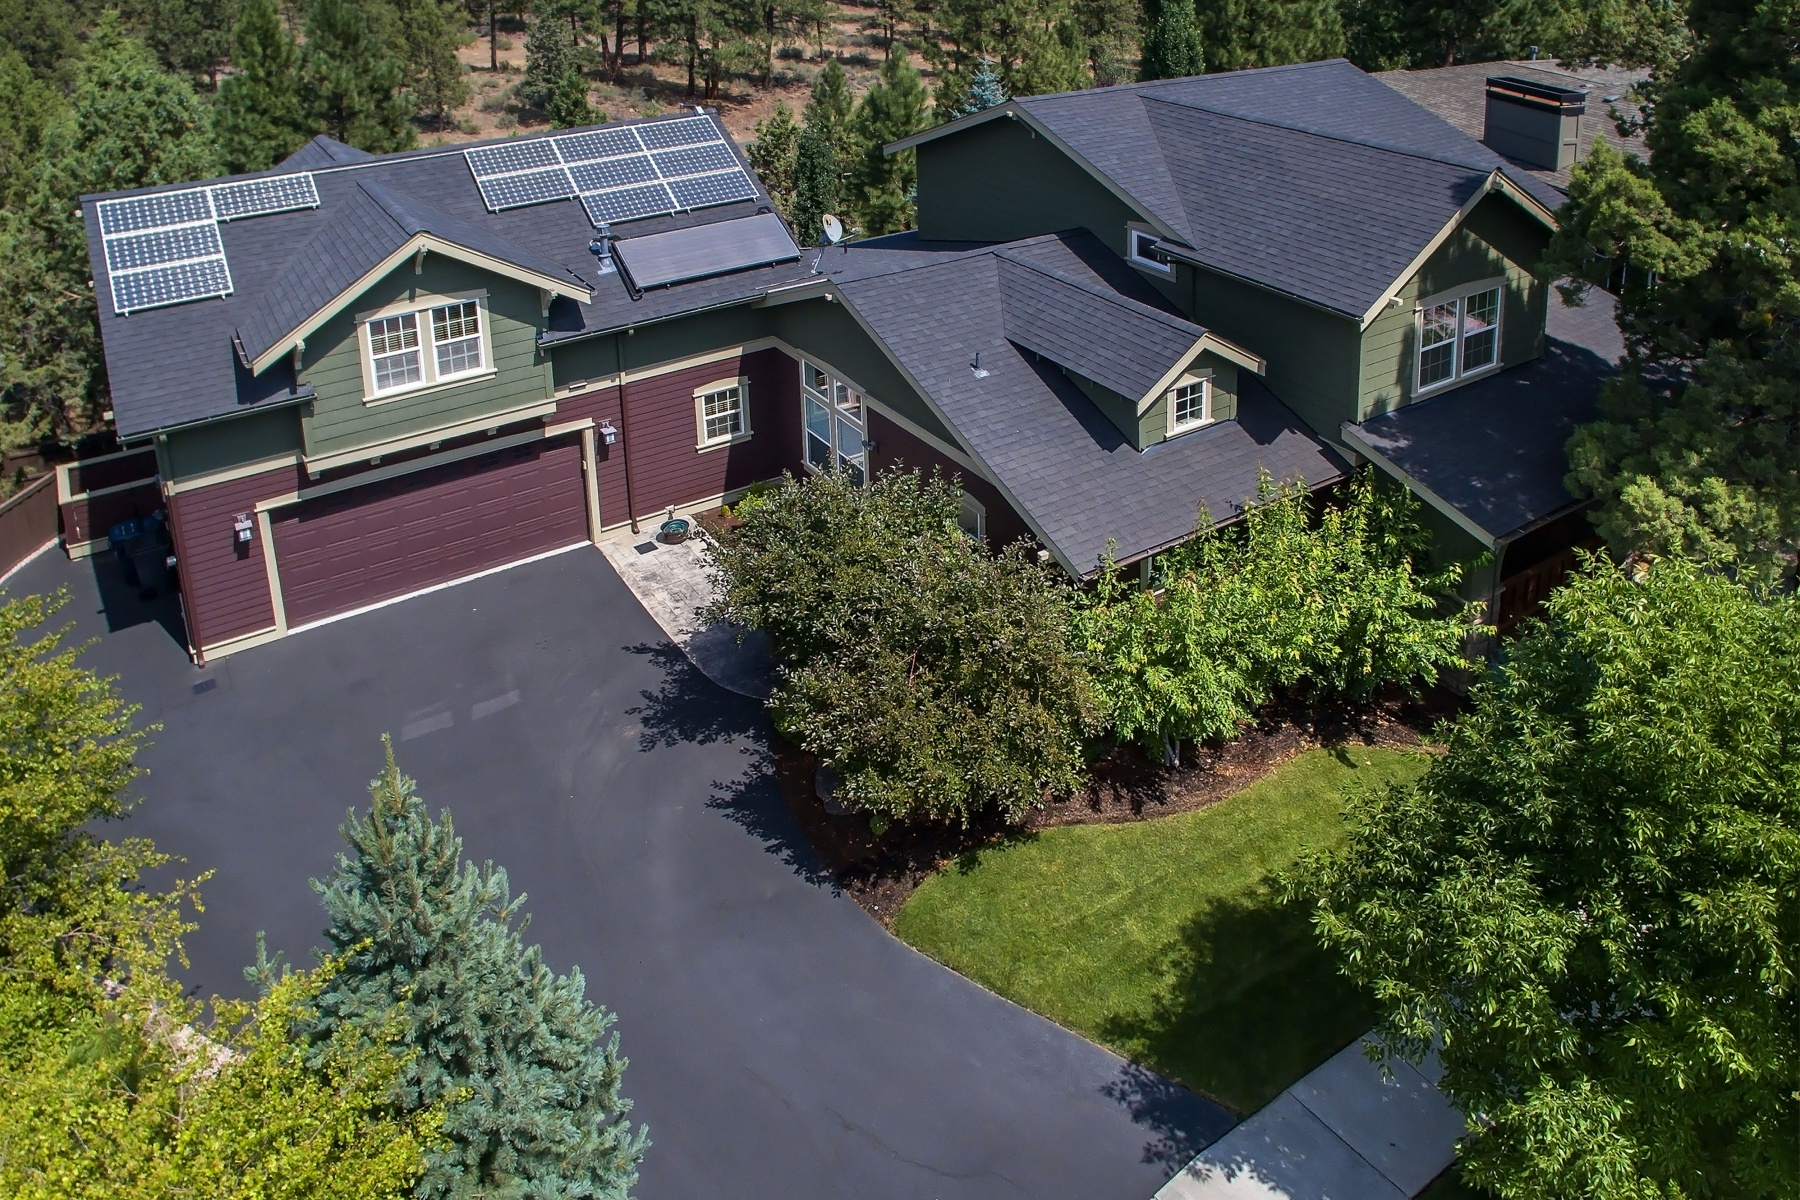 Single Family Home for Sale at 2524 Shields Drive, BEND 2524 NW Shields Dr Bend, Oregon 97701 United States